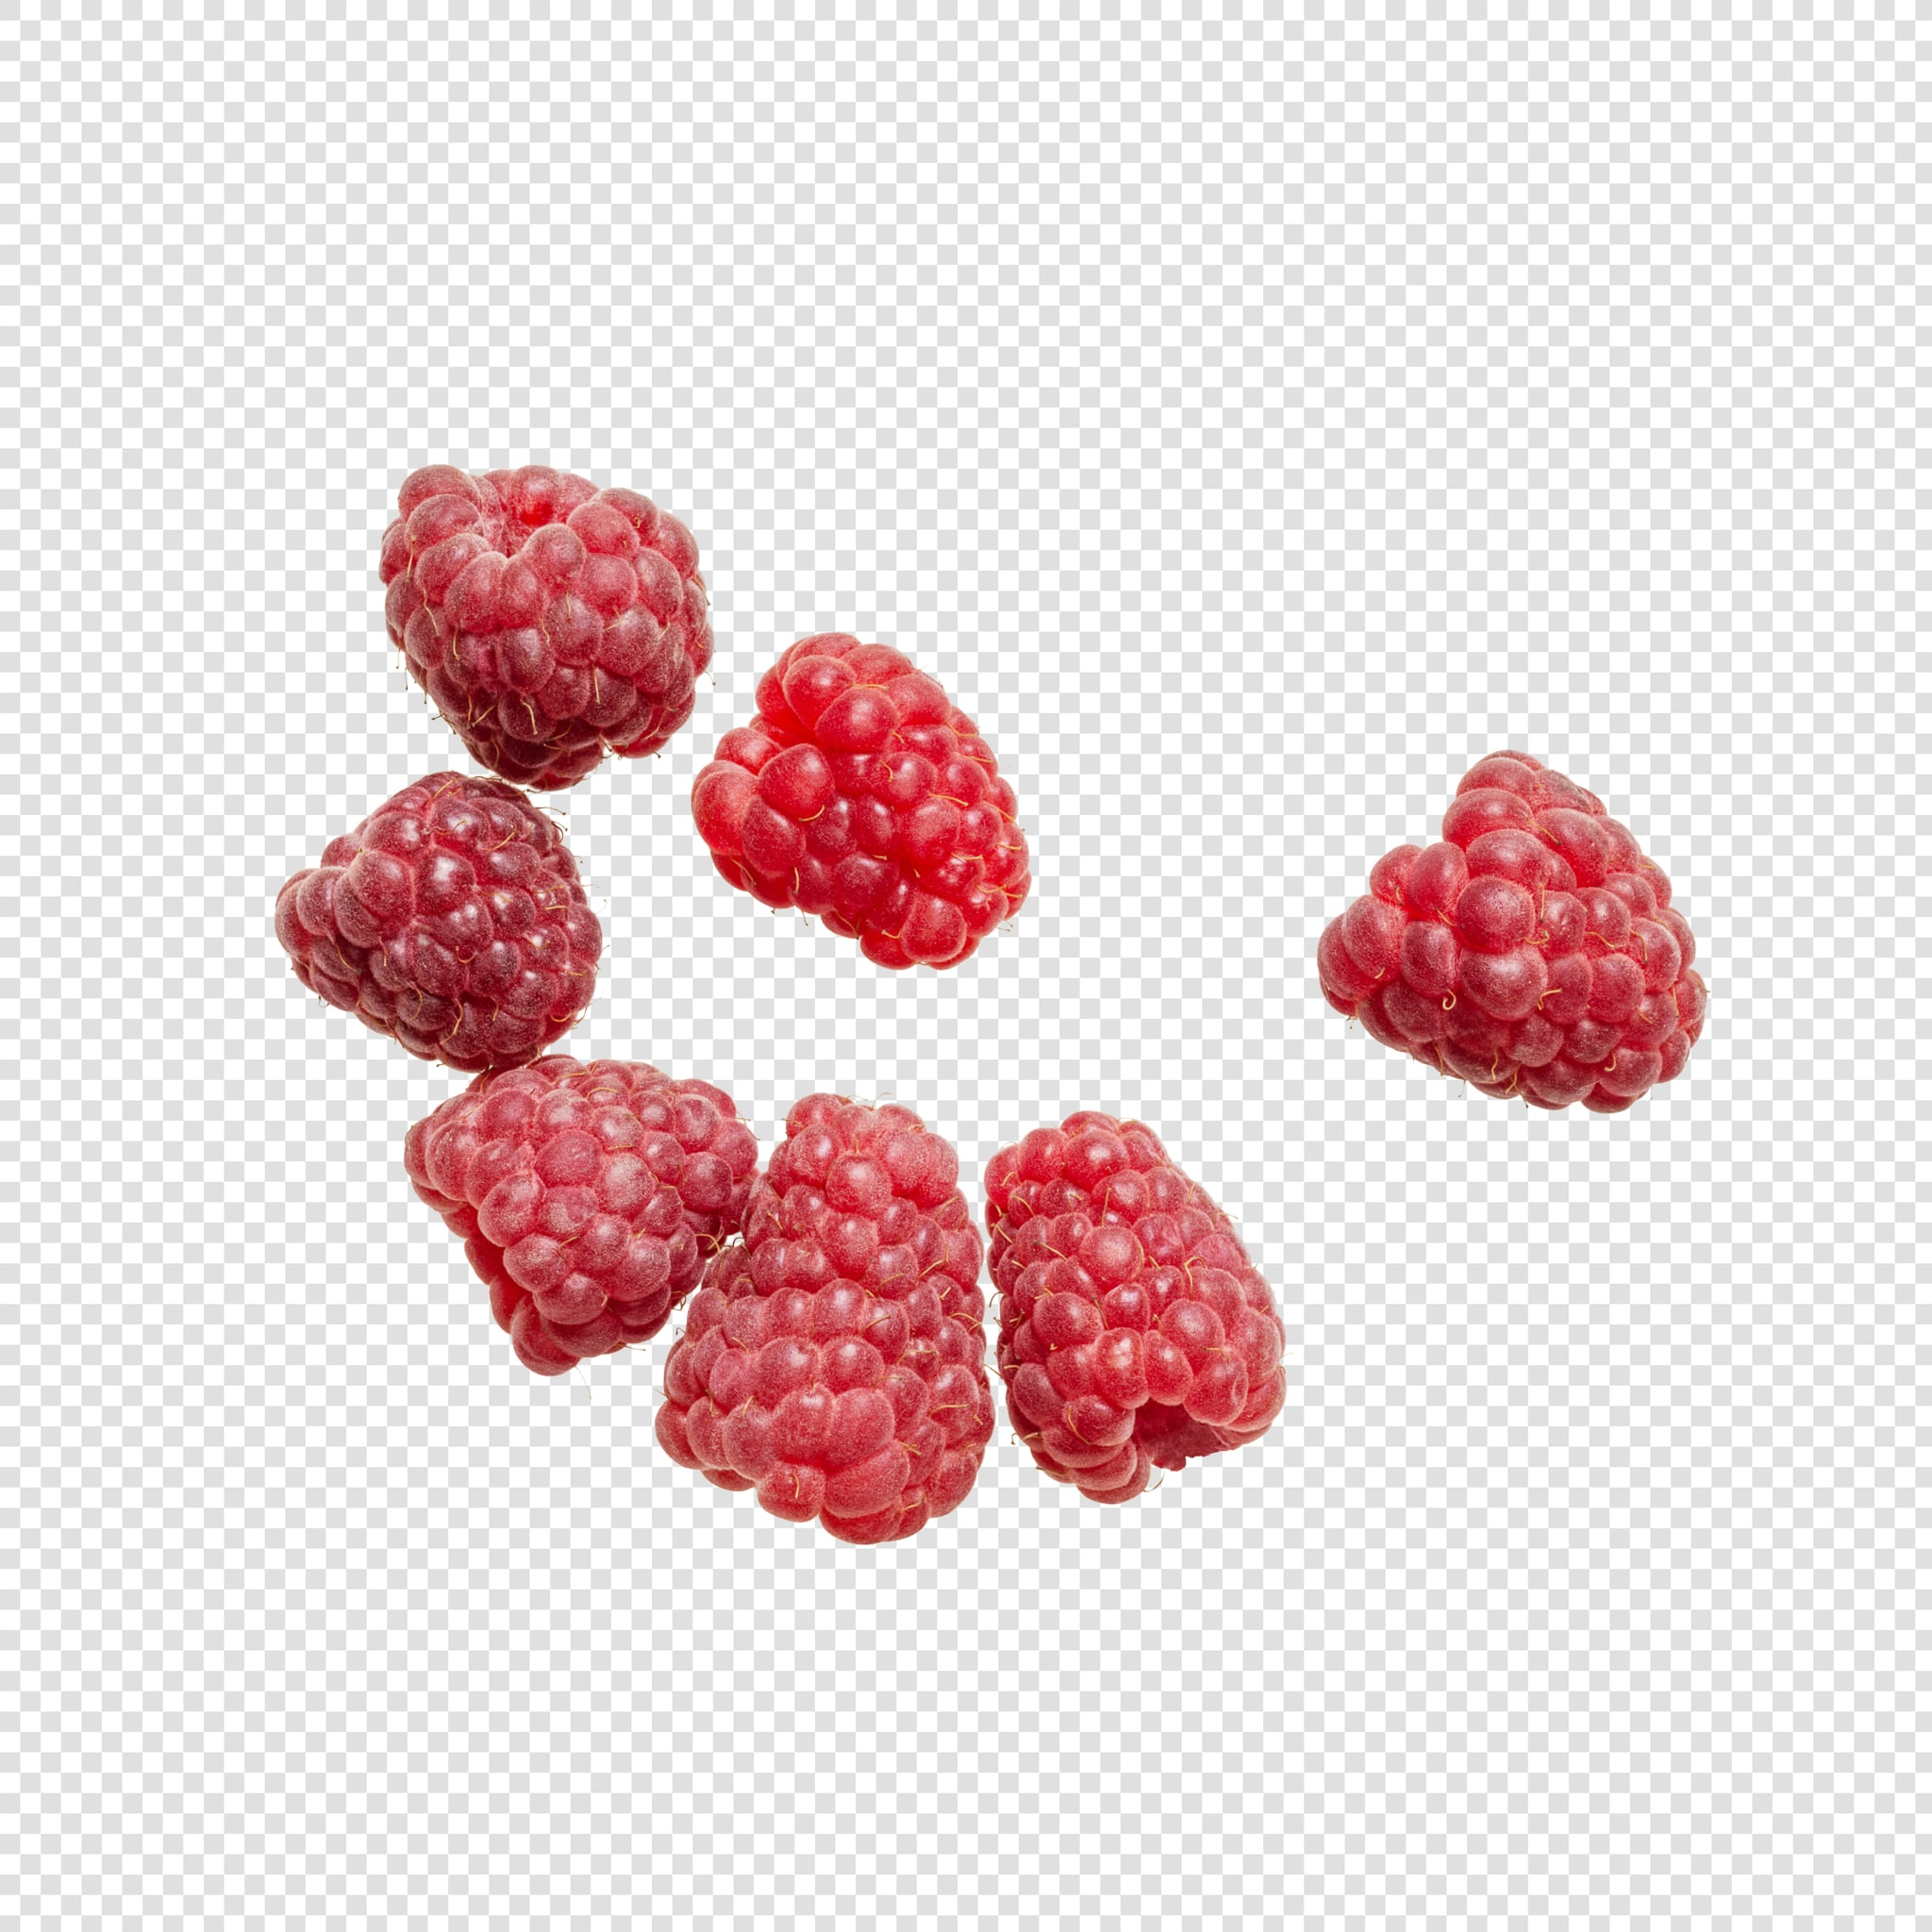 Clean Isolated PSD image of Raspberry on transparent background with separated shadow